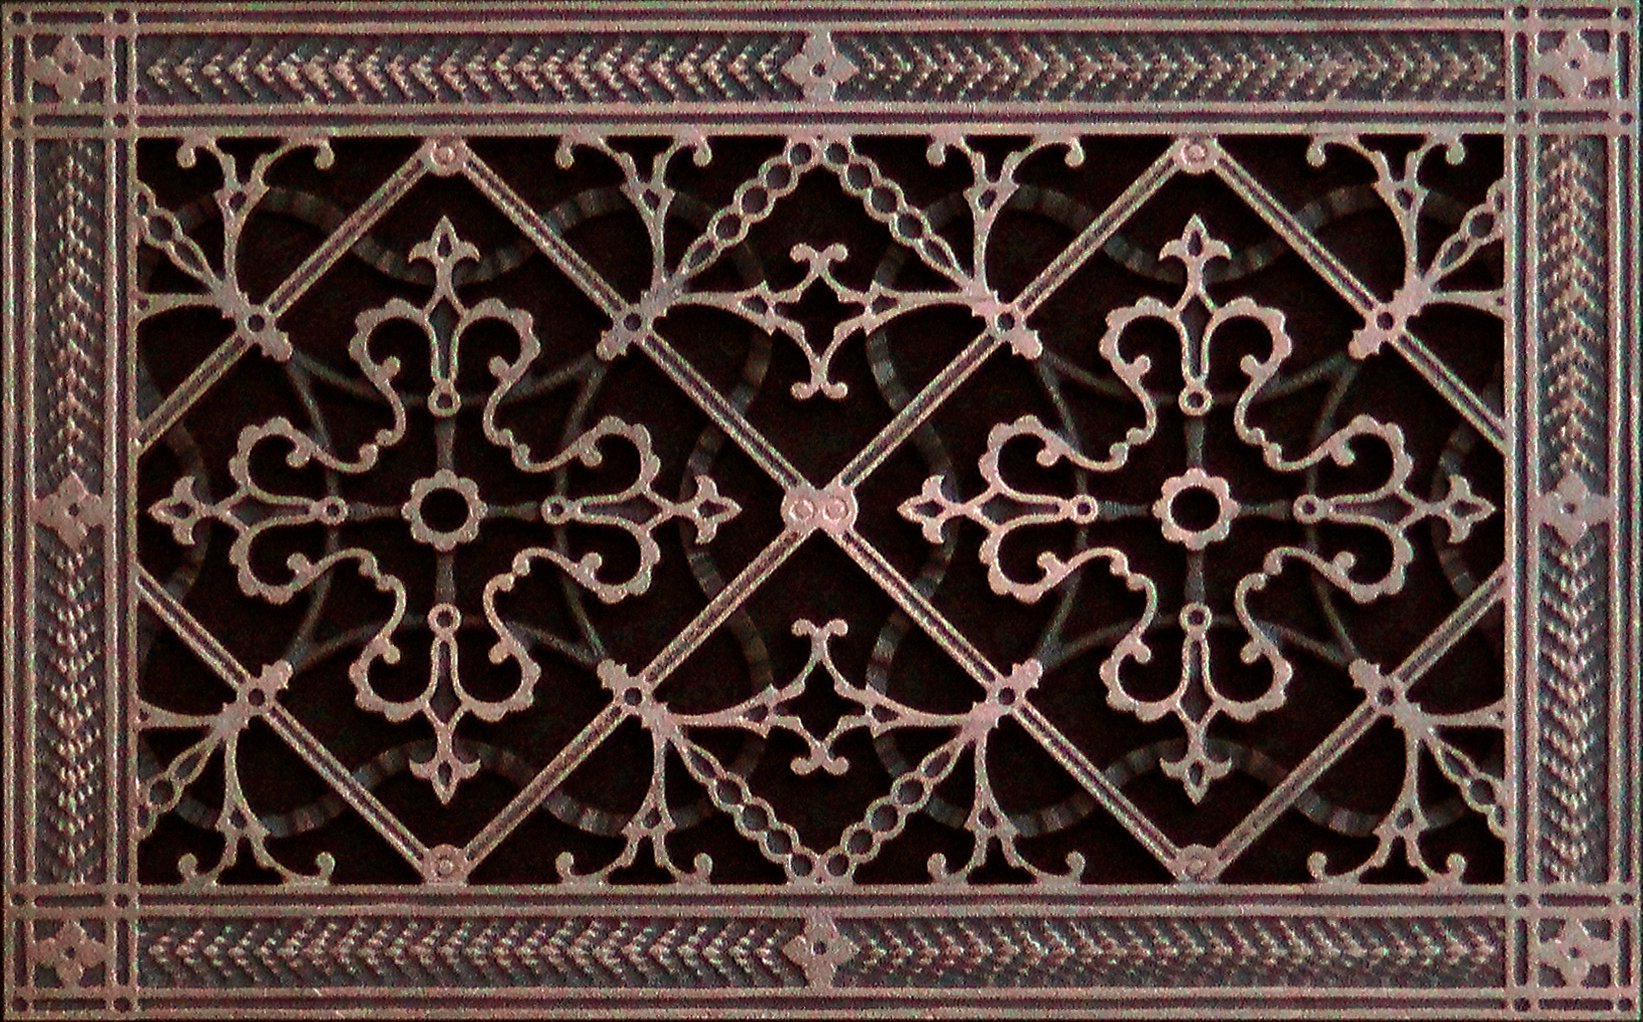 Decorative Grille, Vent Cover, or Return Register. Made of Urethane Resin to fit over a 8''x14'' duct or opening. Total size of vent is 10''x16''x3/8'', for wall and ceiling grilles (not for floor use).